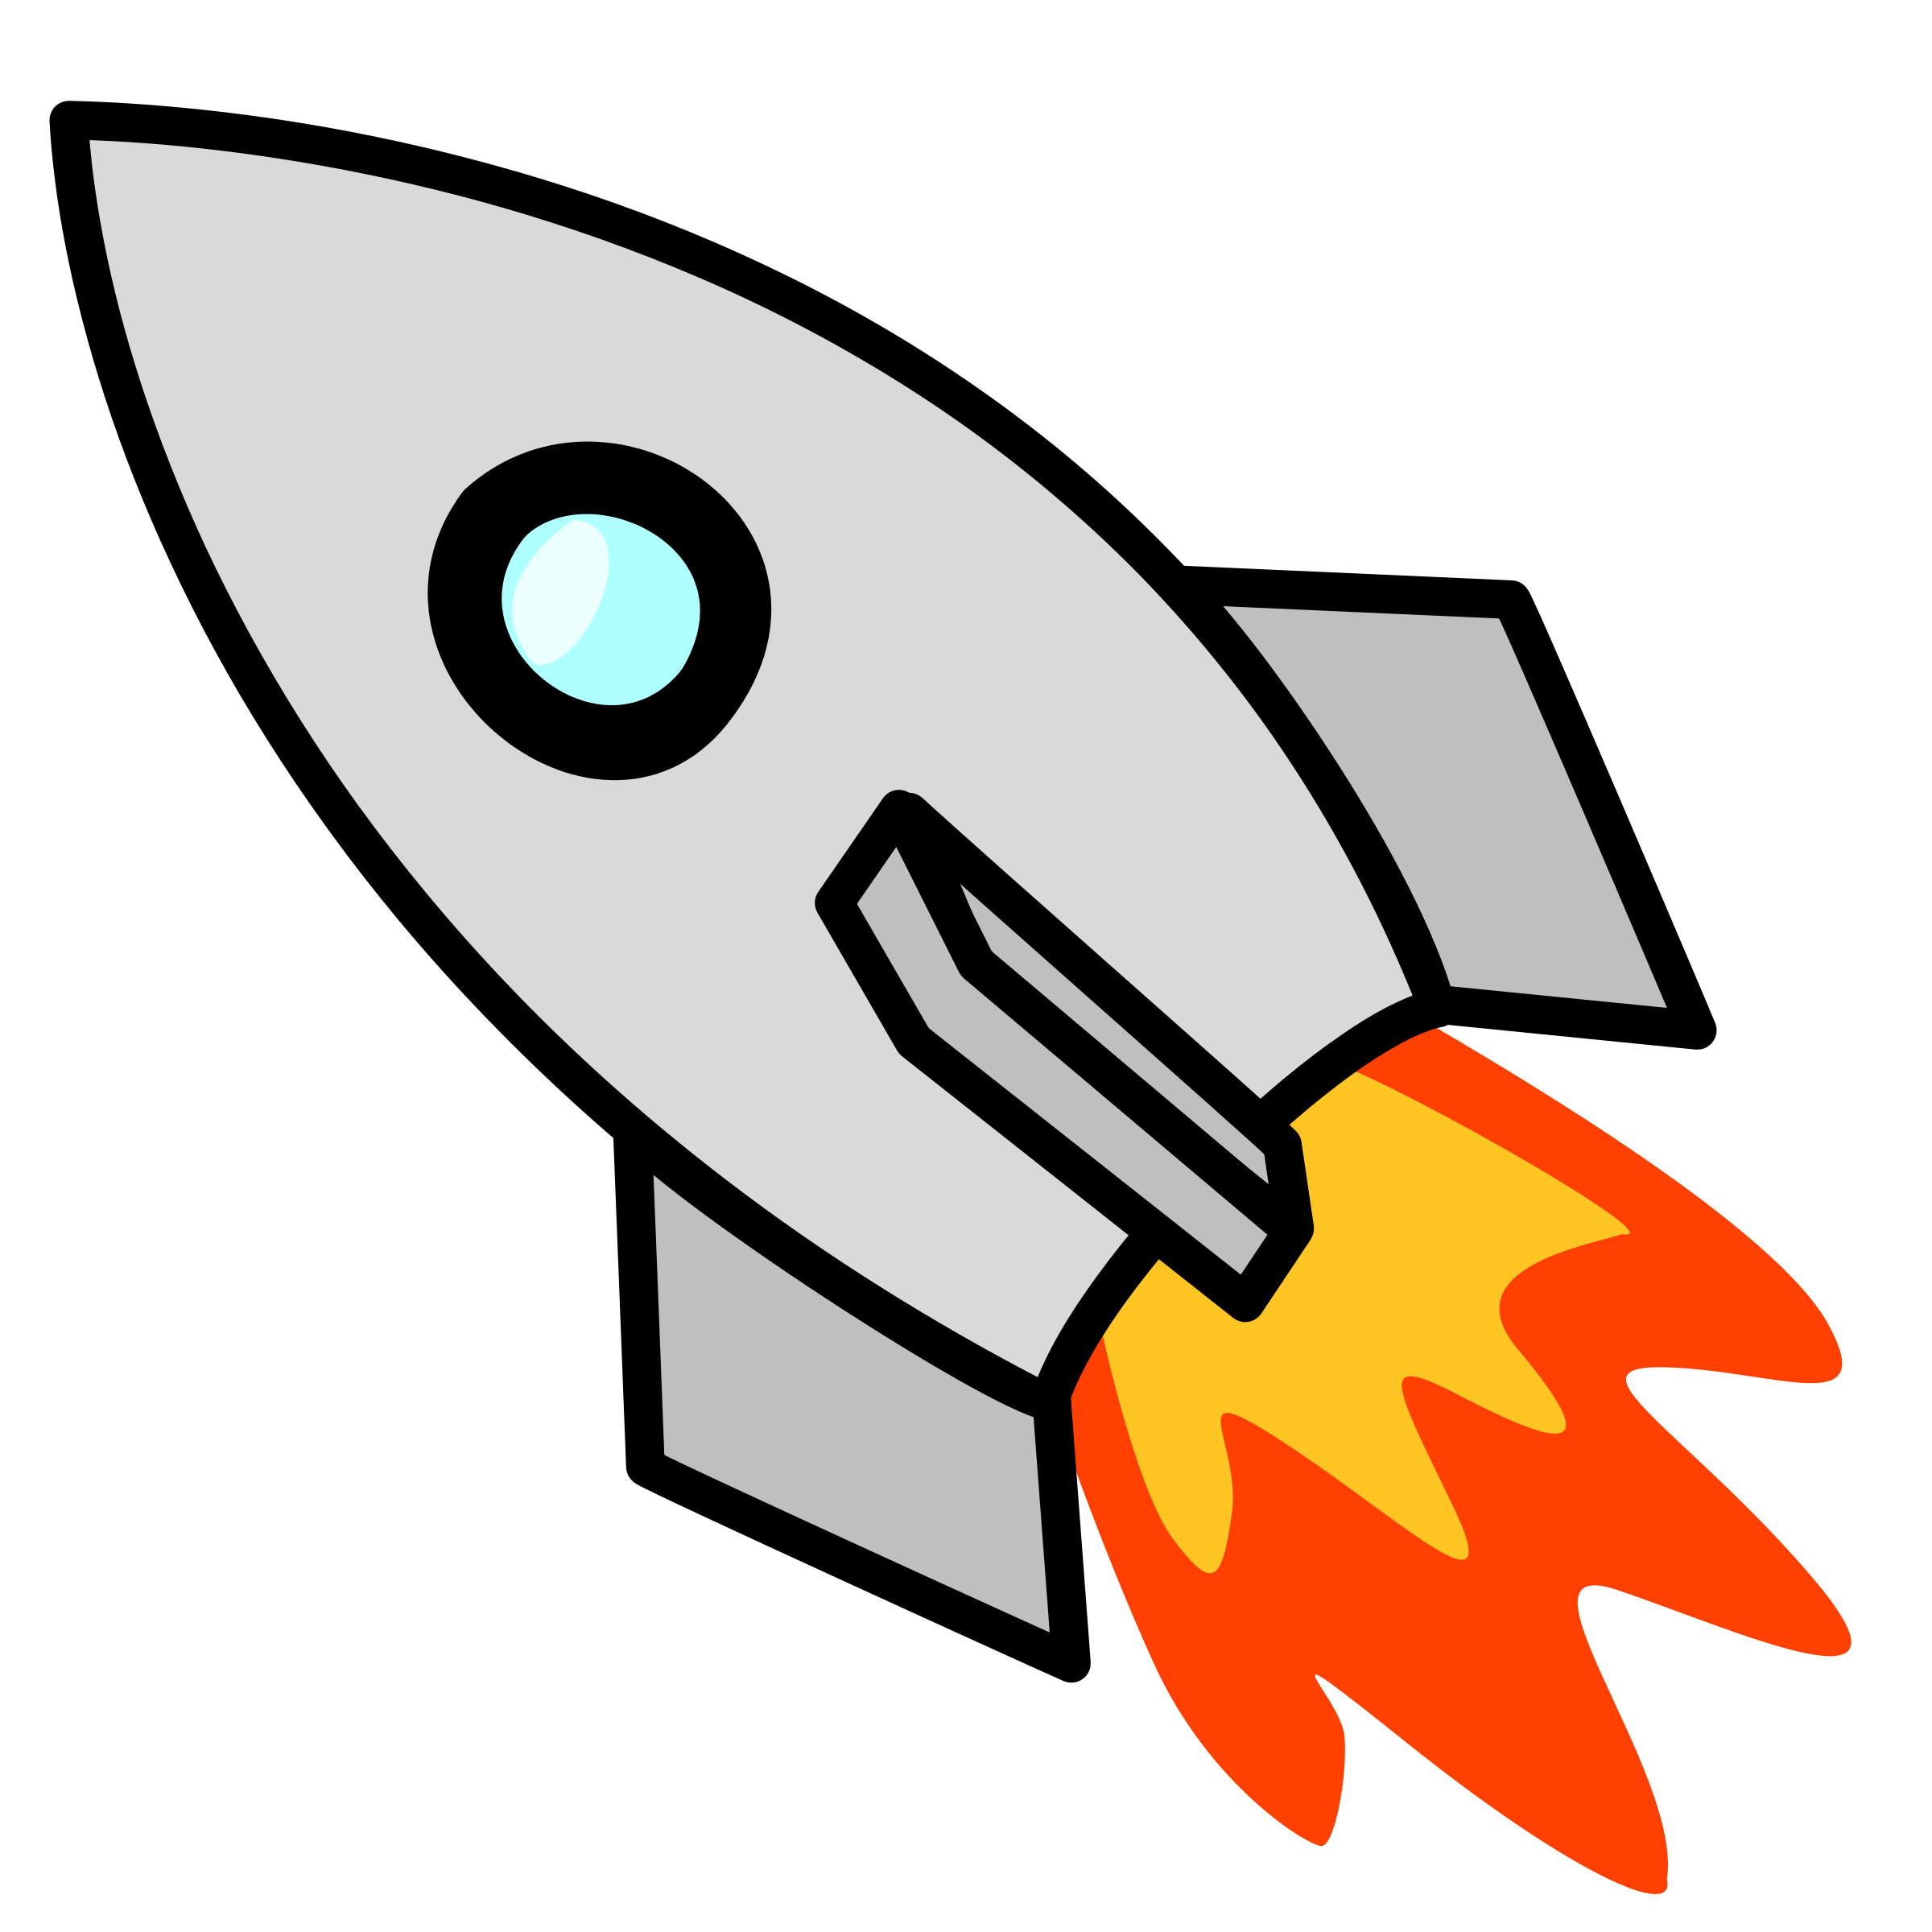 Images For > Cute Rocket Clipart Personal space camp